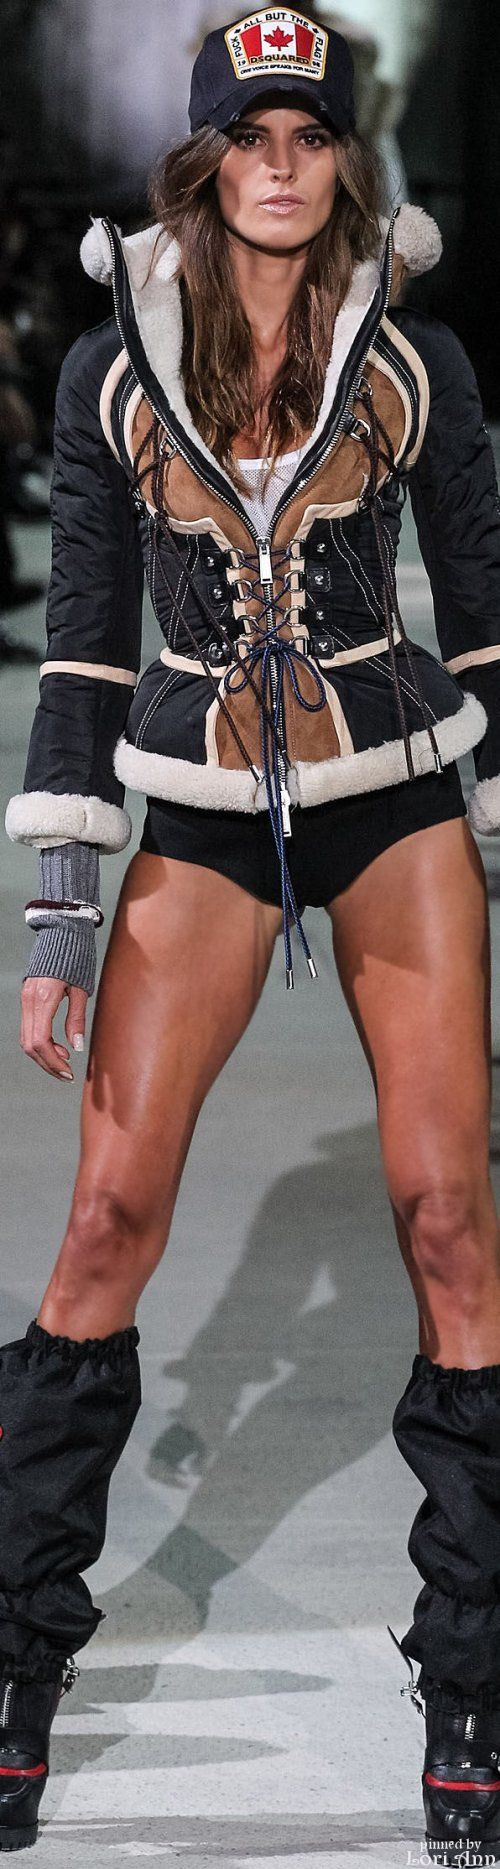 Dsquared² Fall 2015 RTW - her legs are gorgeous and toned.